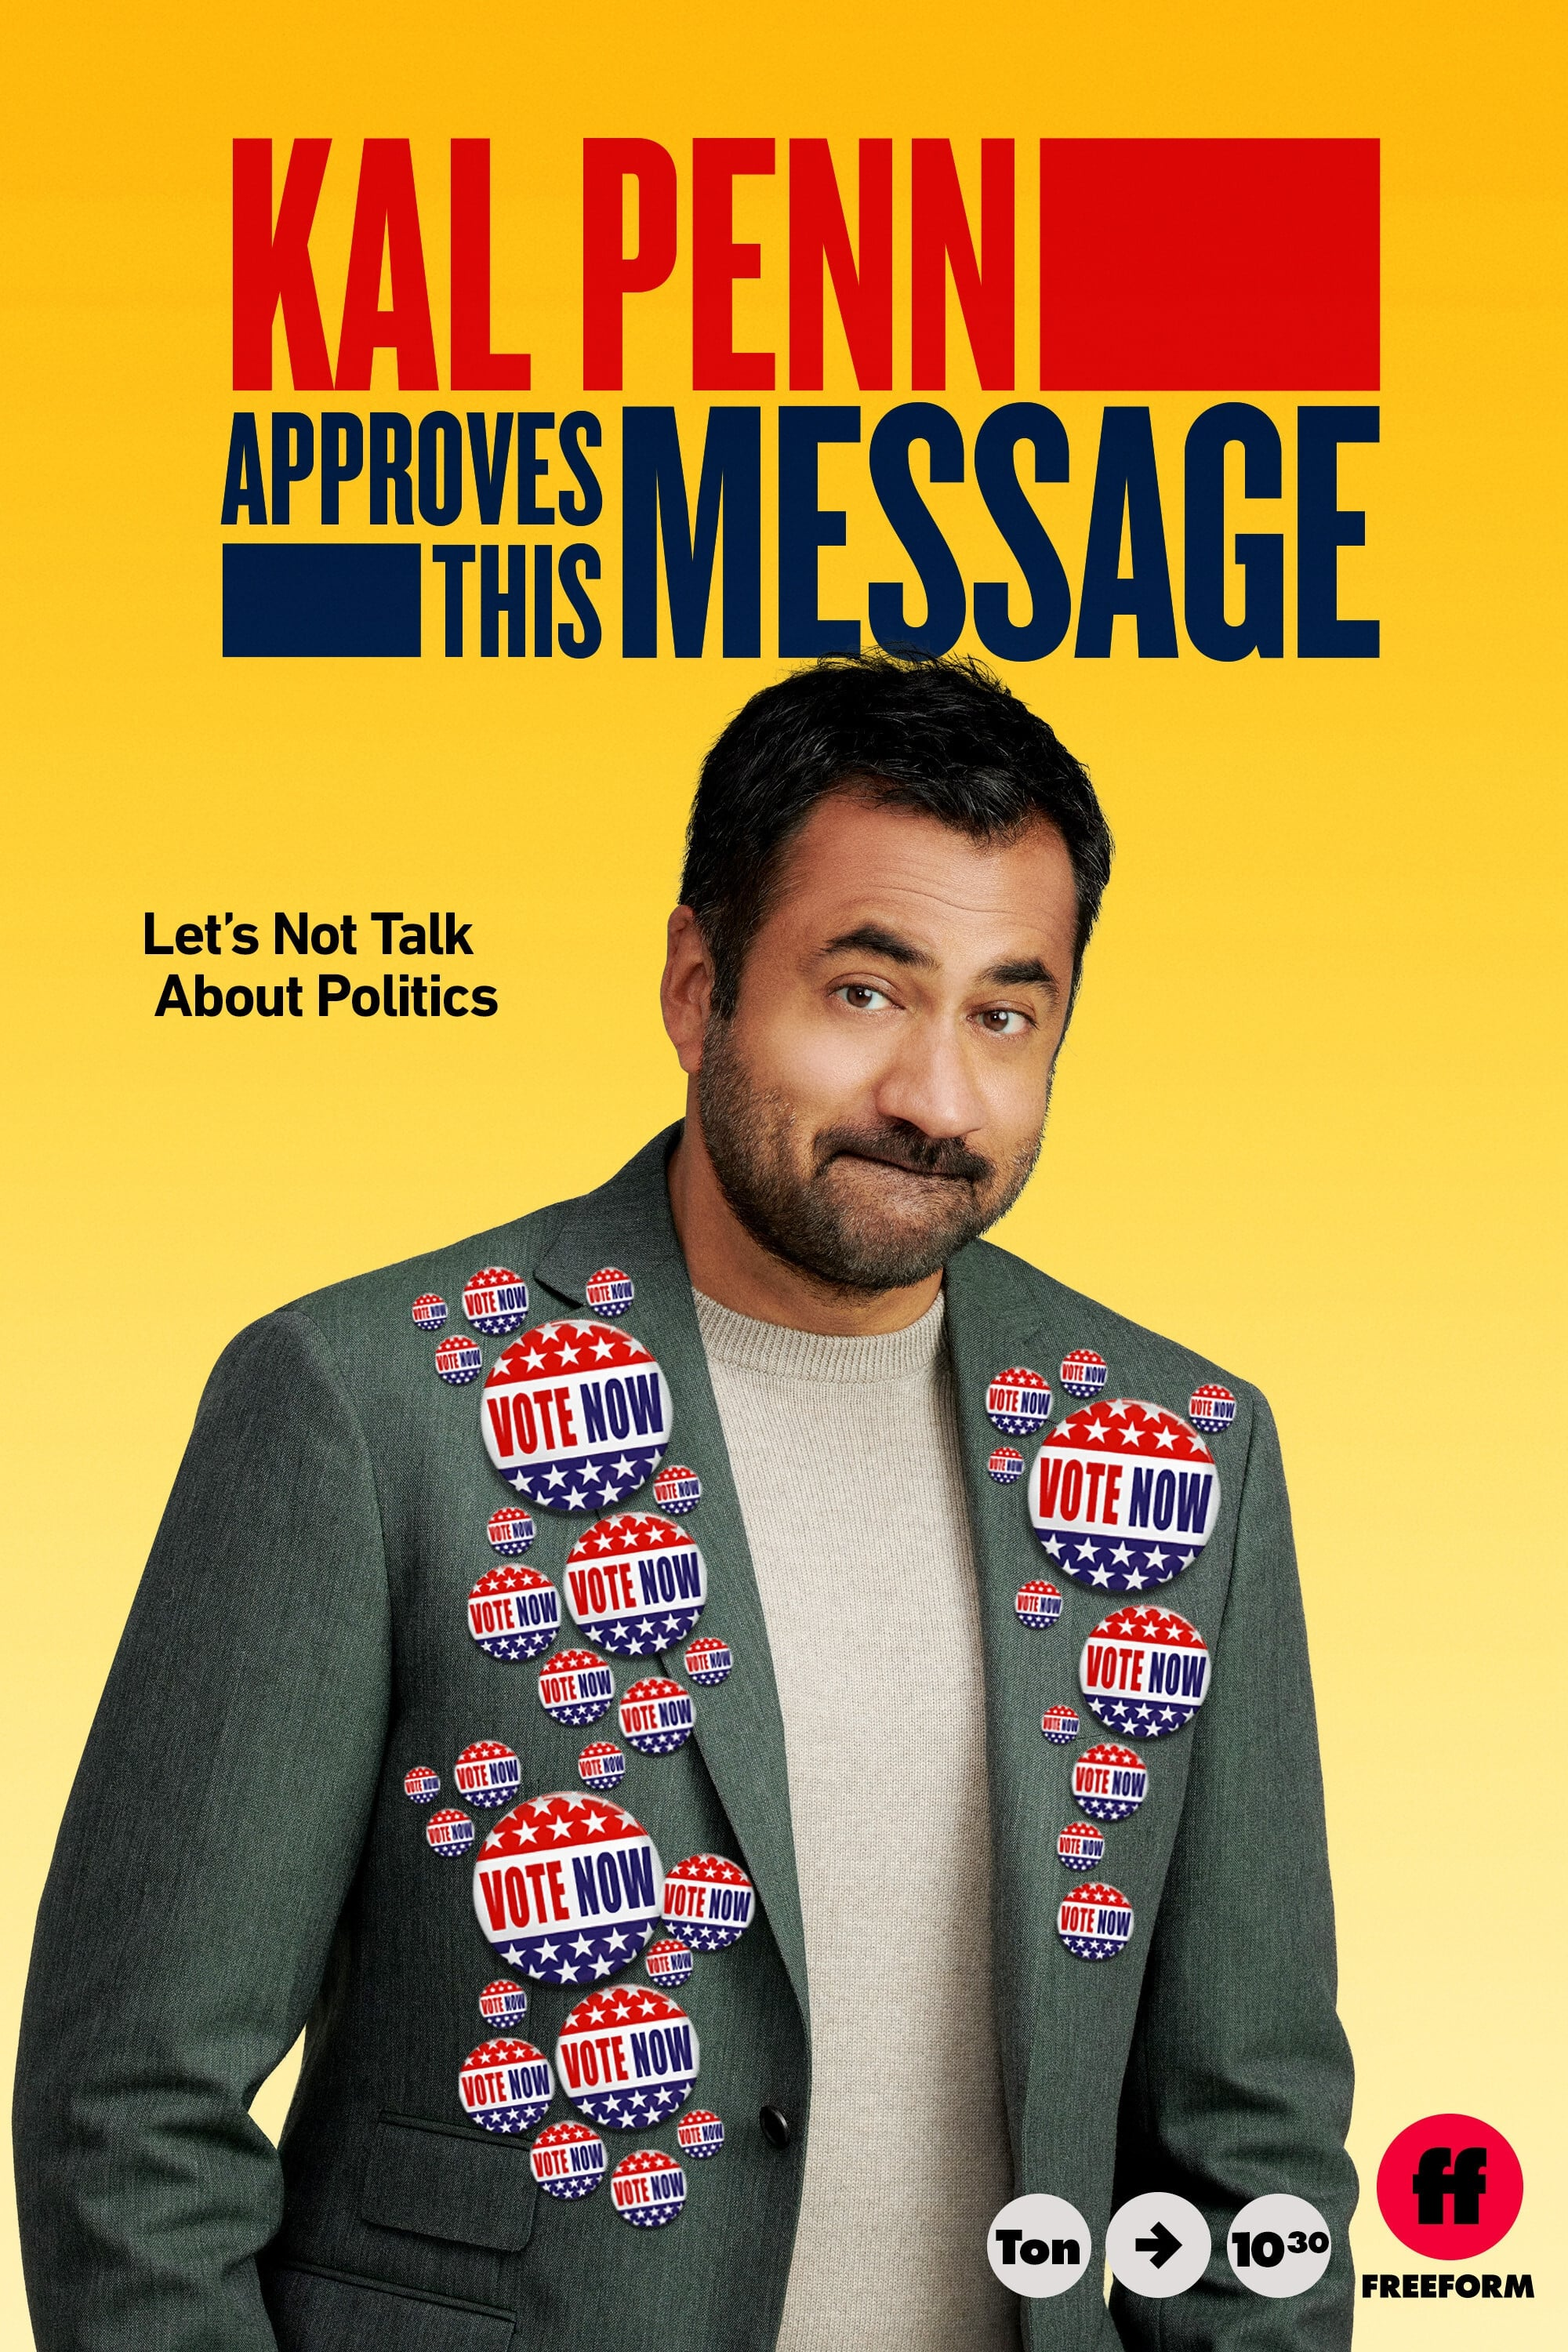 Kal Penn Approves This Message